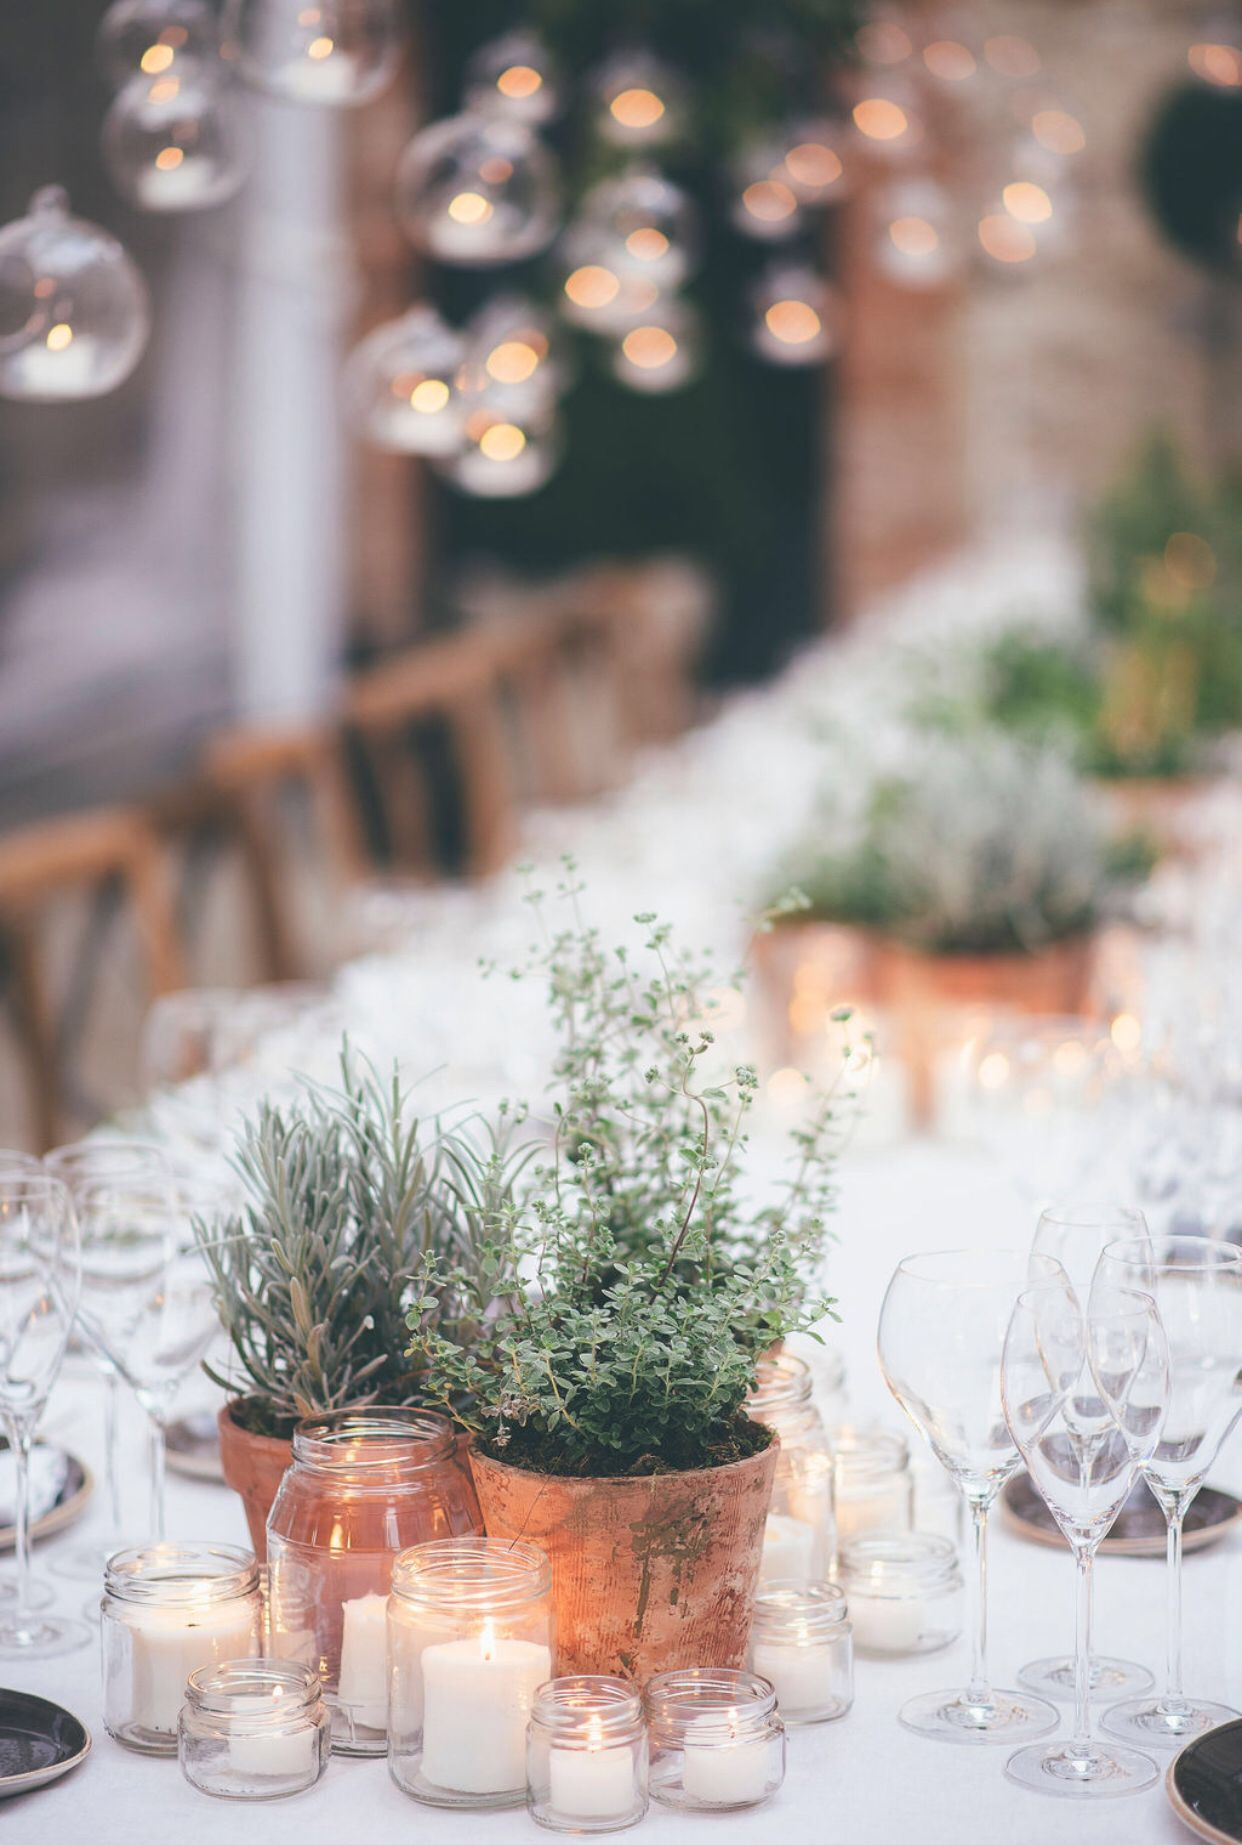 Rustic Italian Table Decor